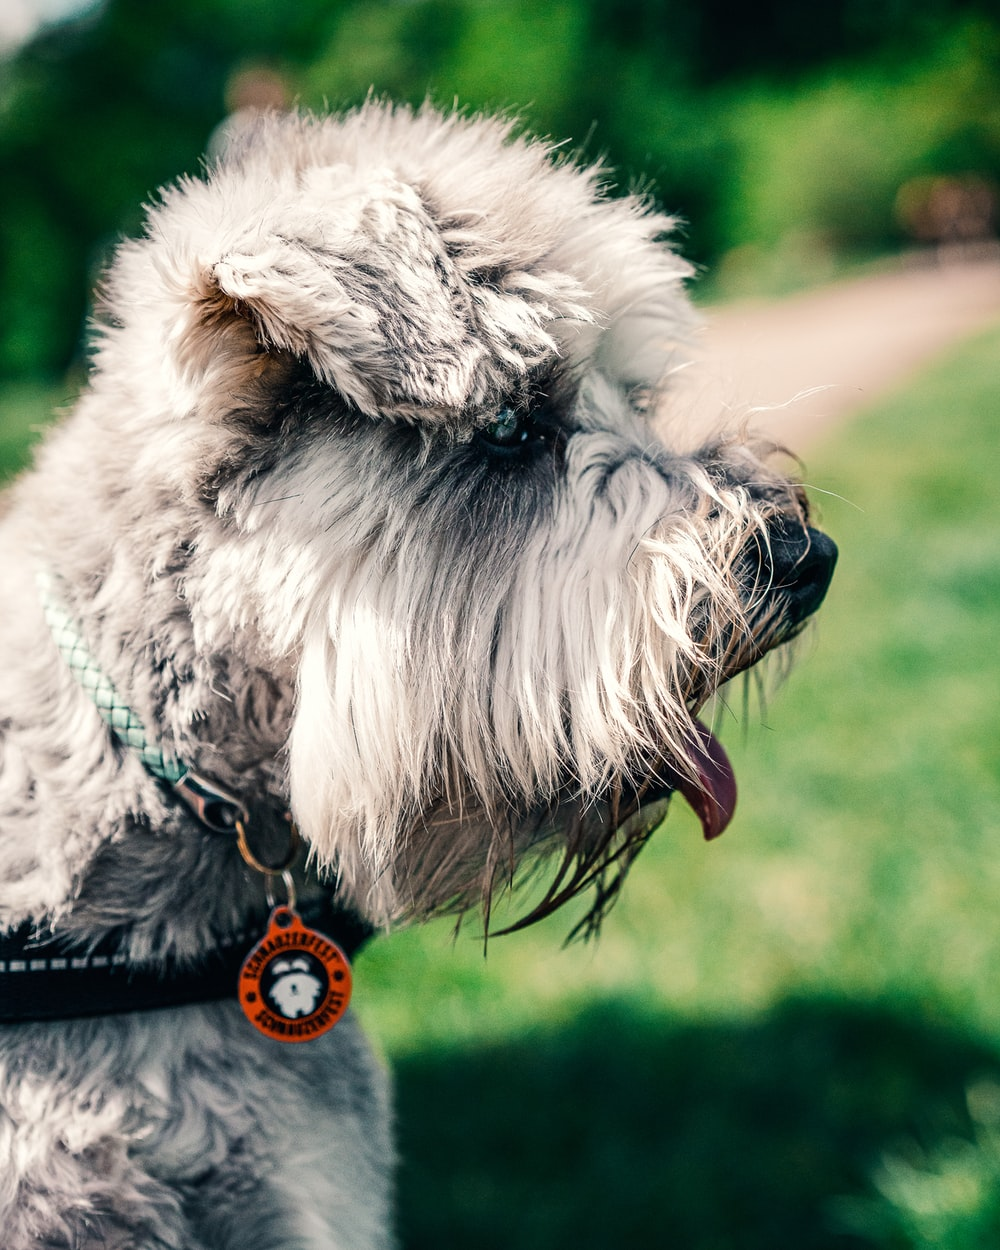 gray and white miniature schnauzer on green grass field during daytime